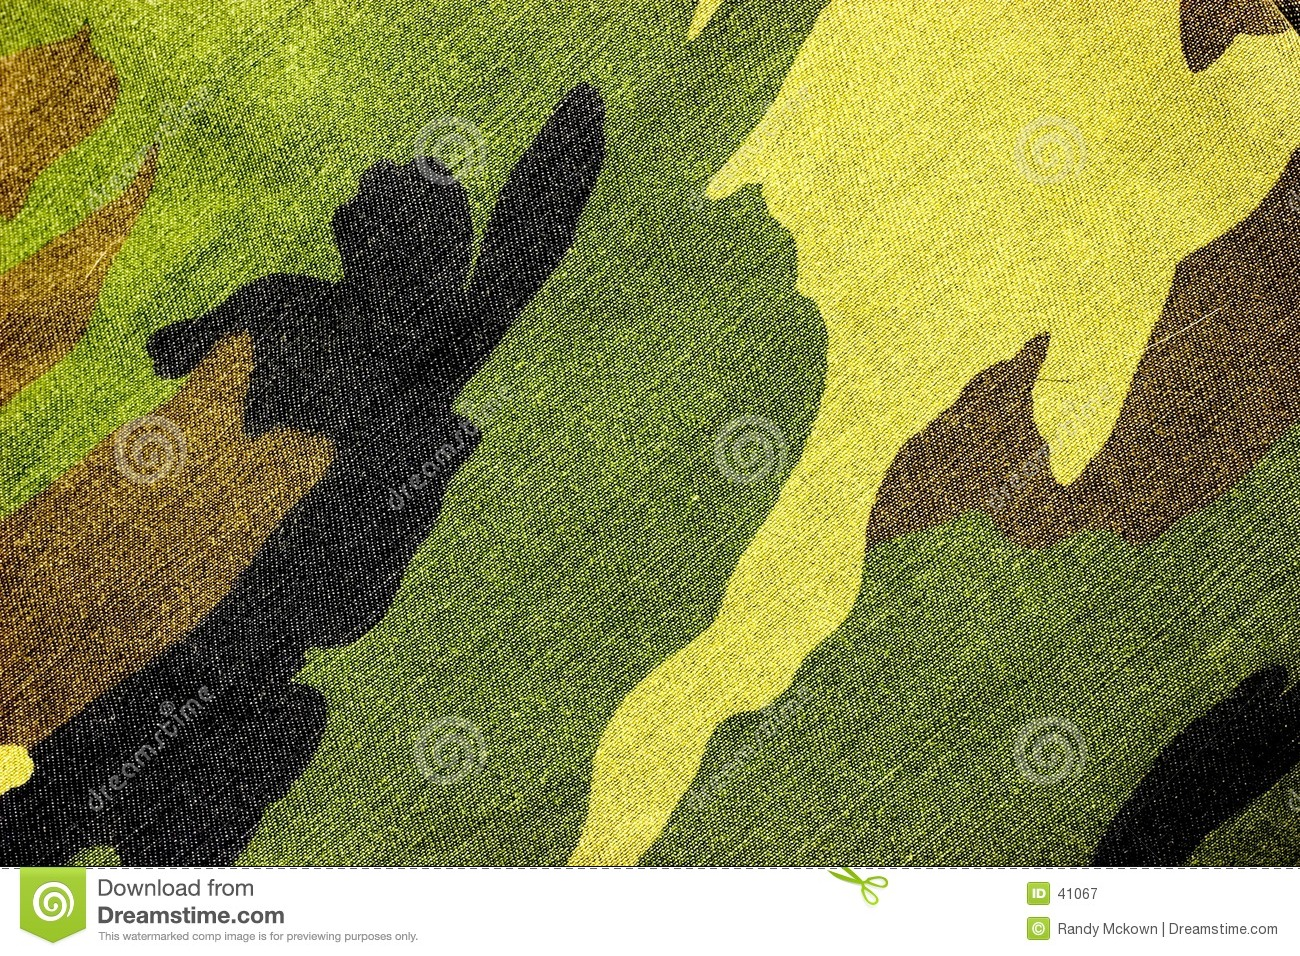 Green camo military hunting background texture